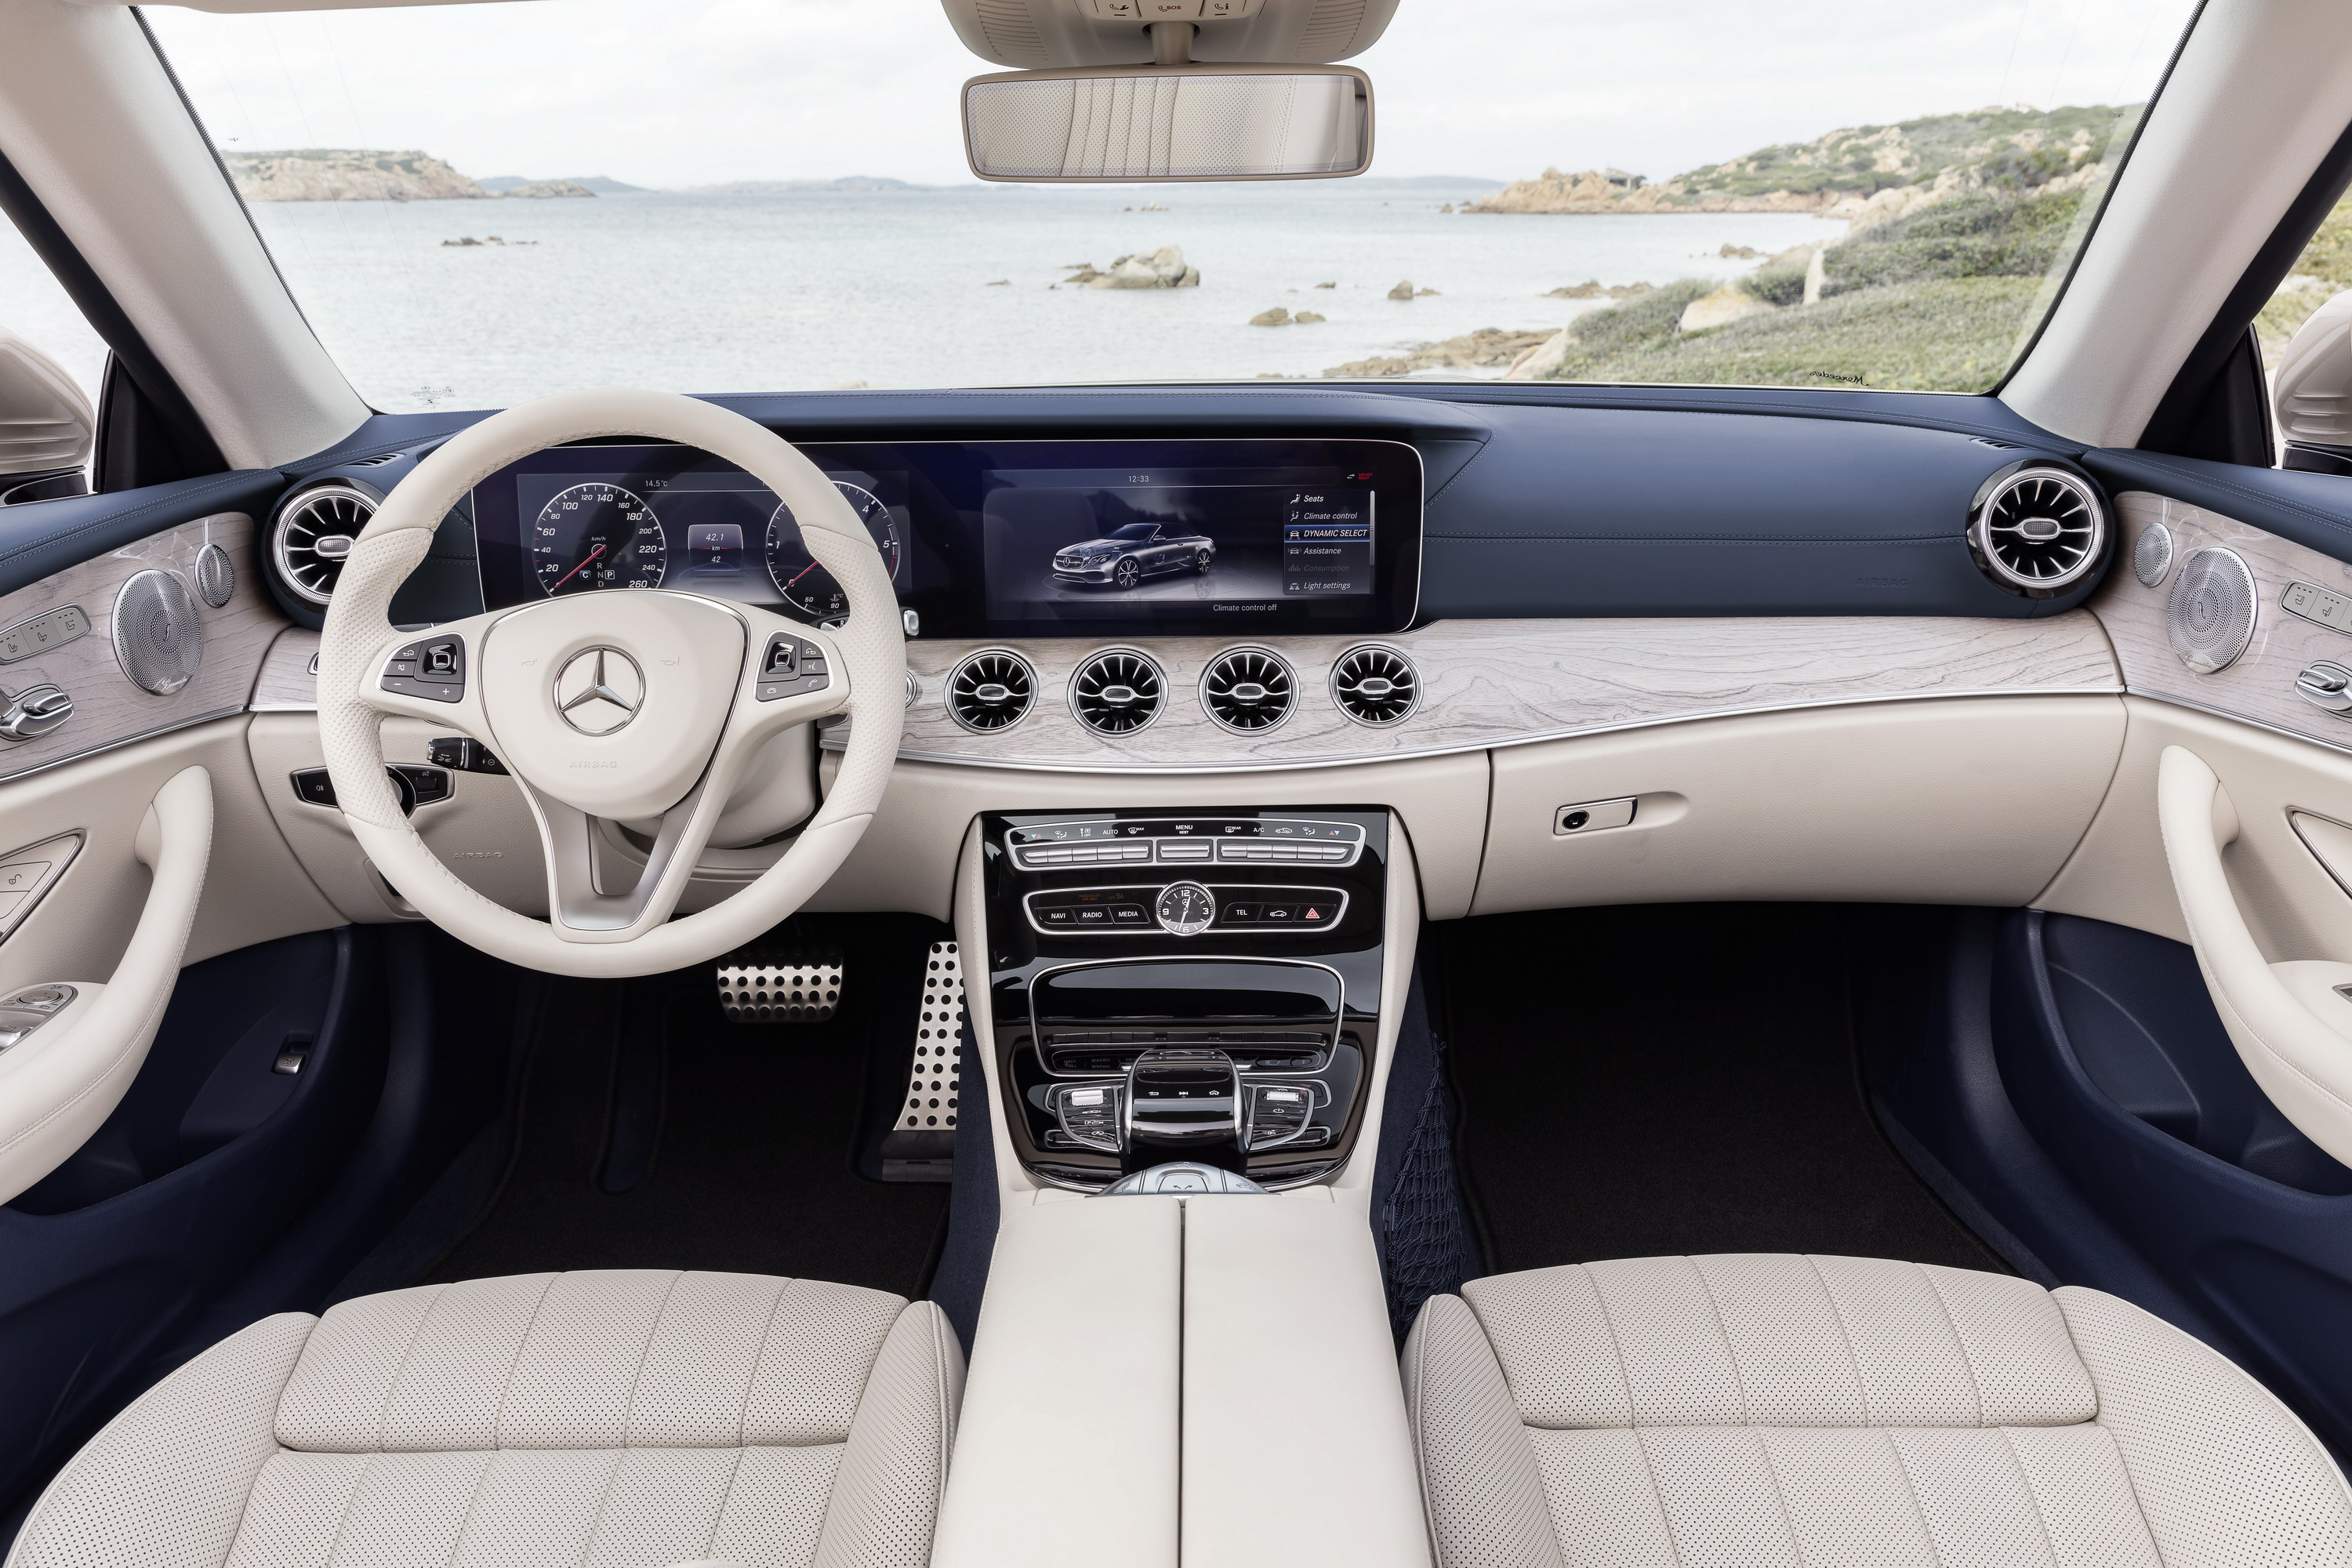 Mercedes-Benz E-Class: Storing the current speed or calling up a stored speed